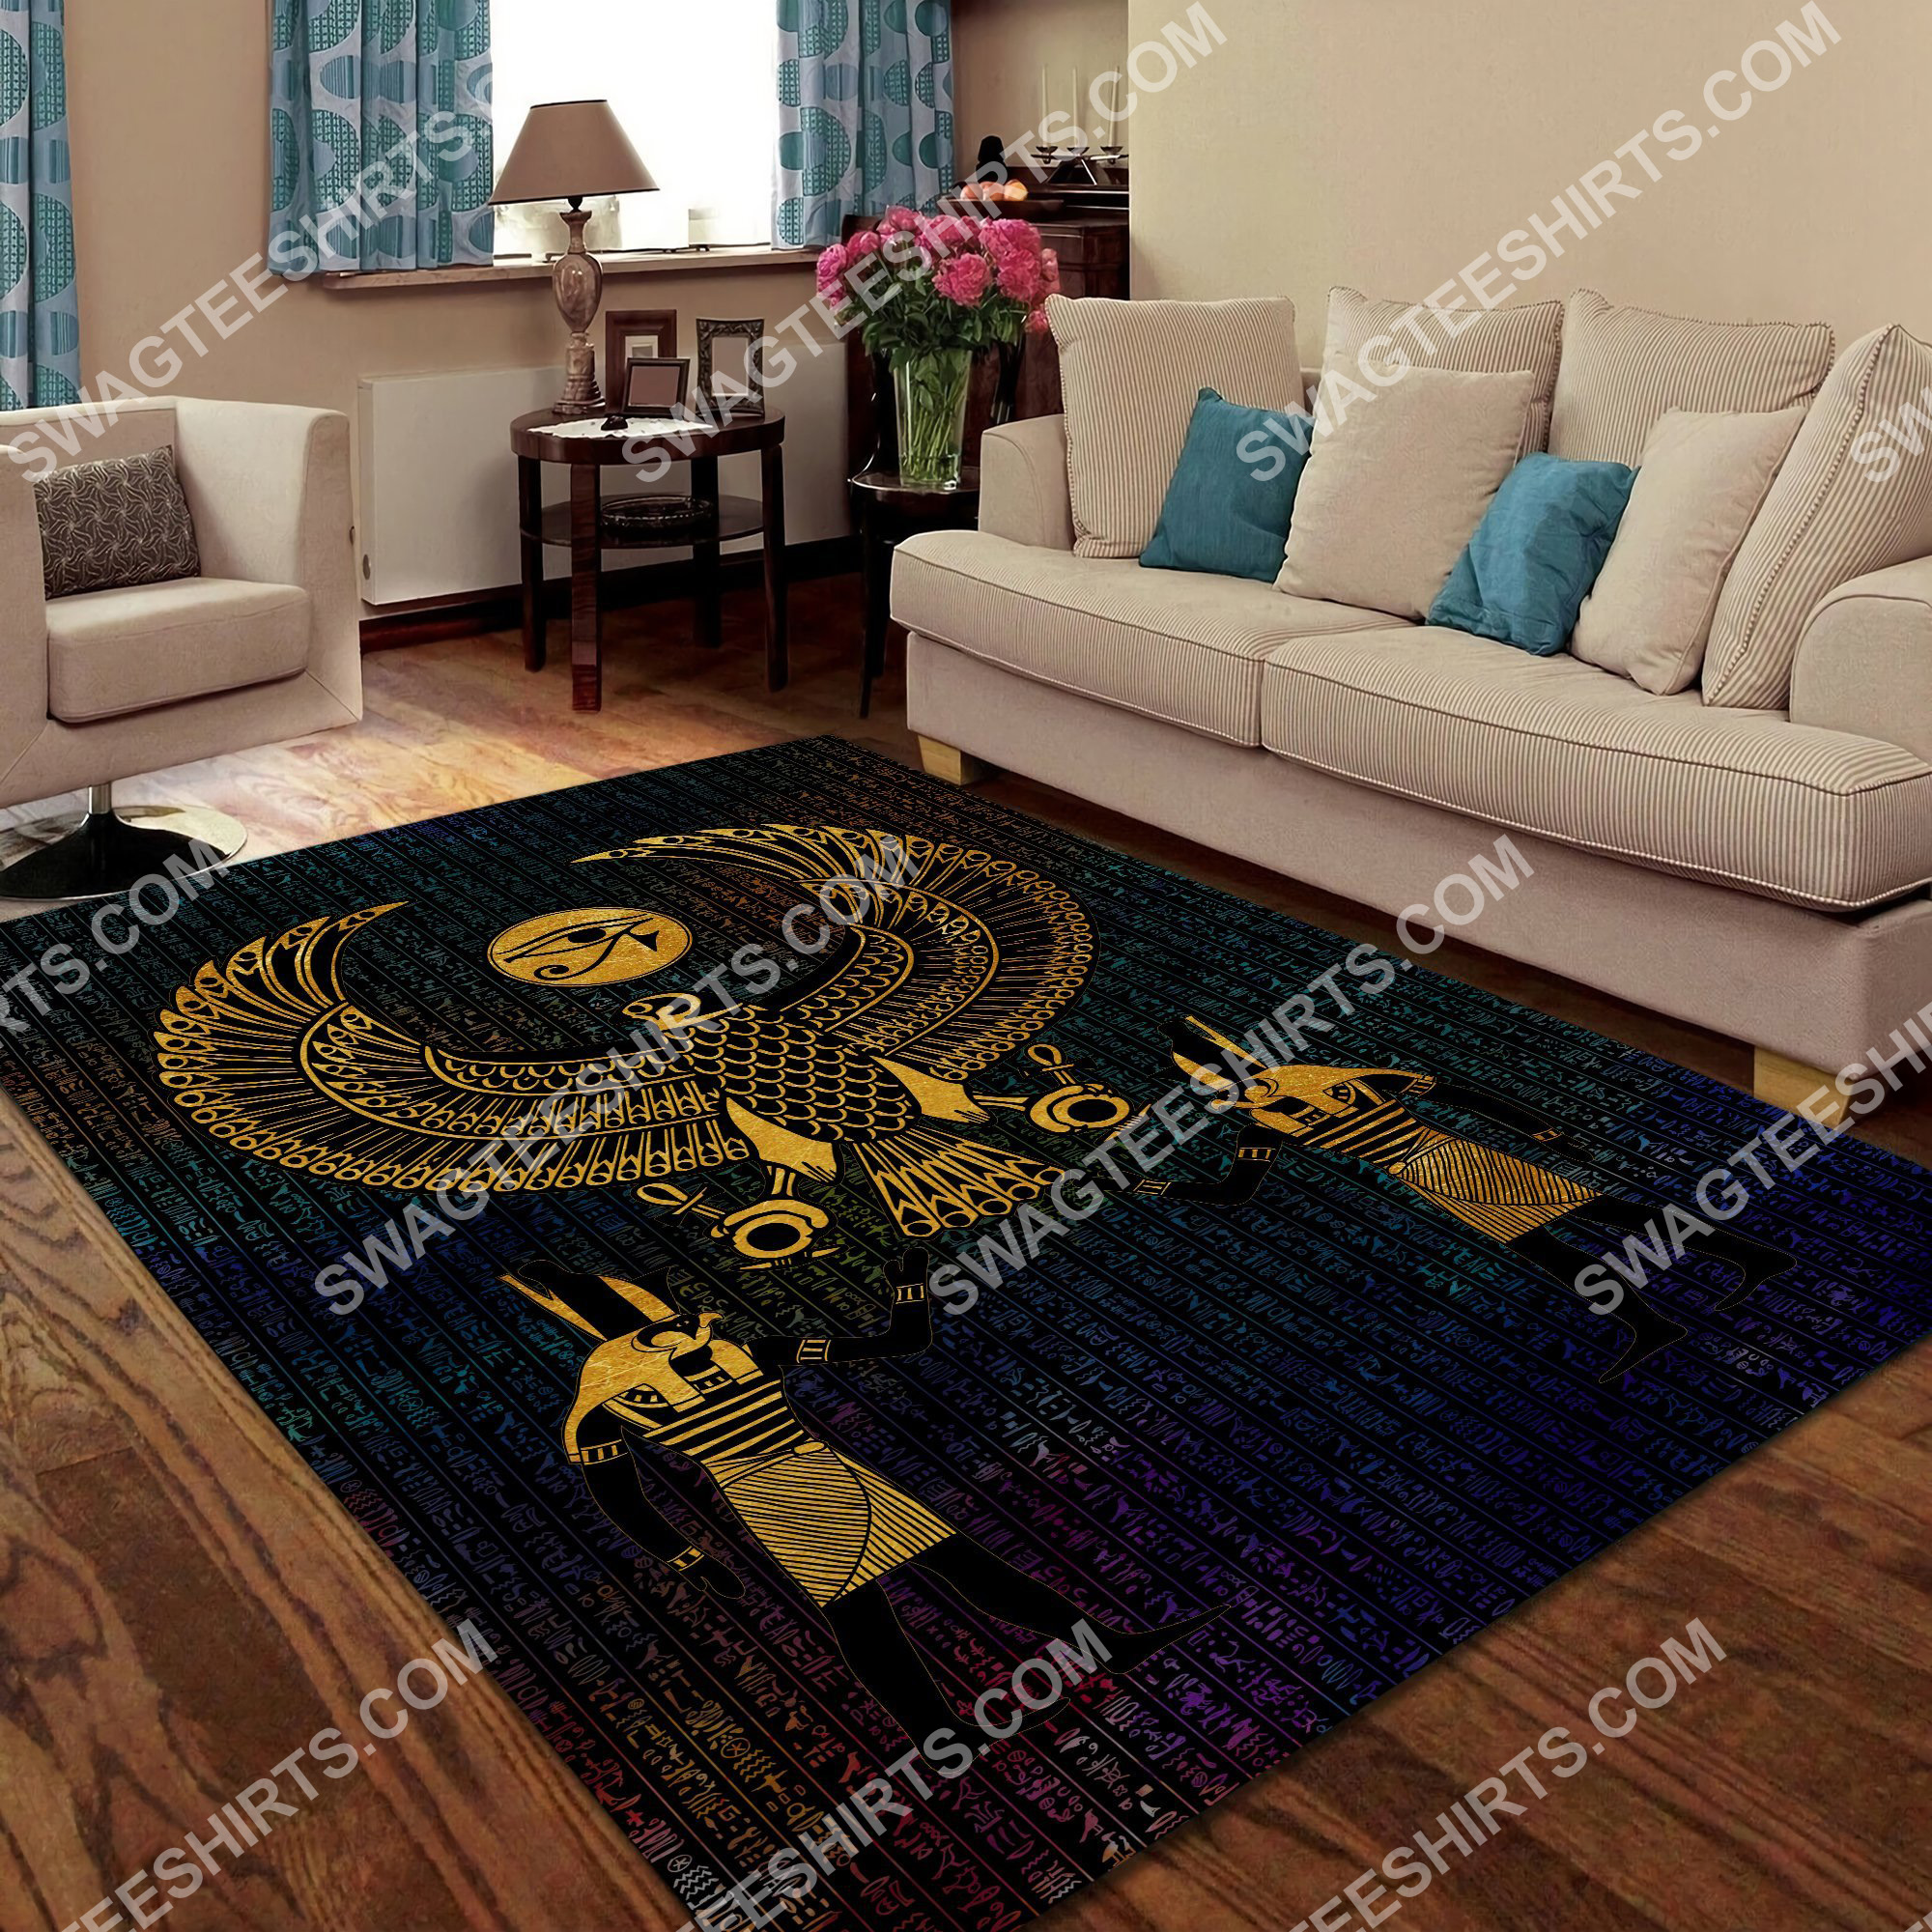 ancient egyptian eye of horus all over printed rug 4(1) - Copy